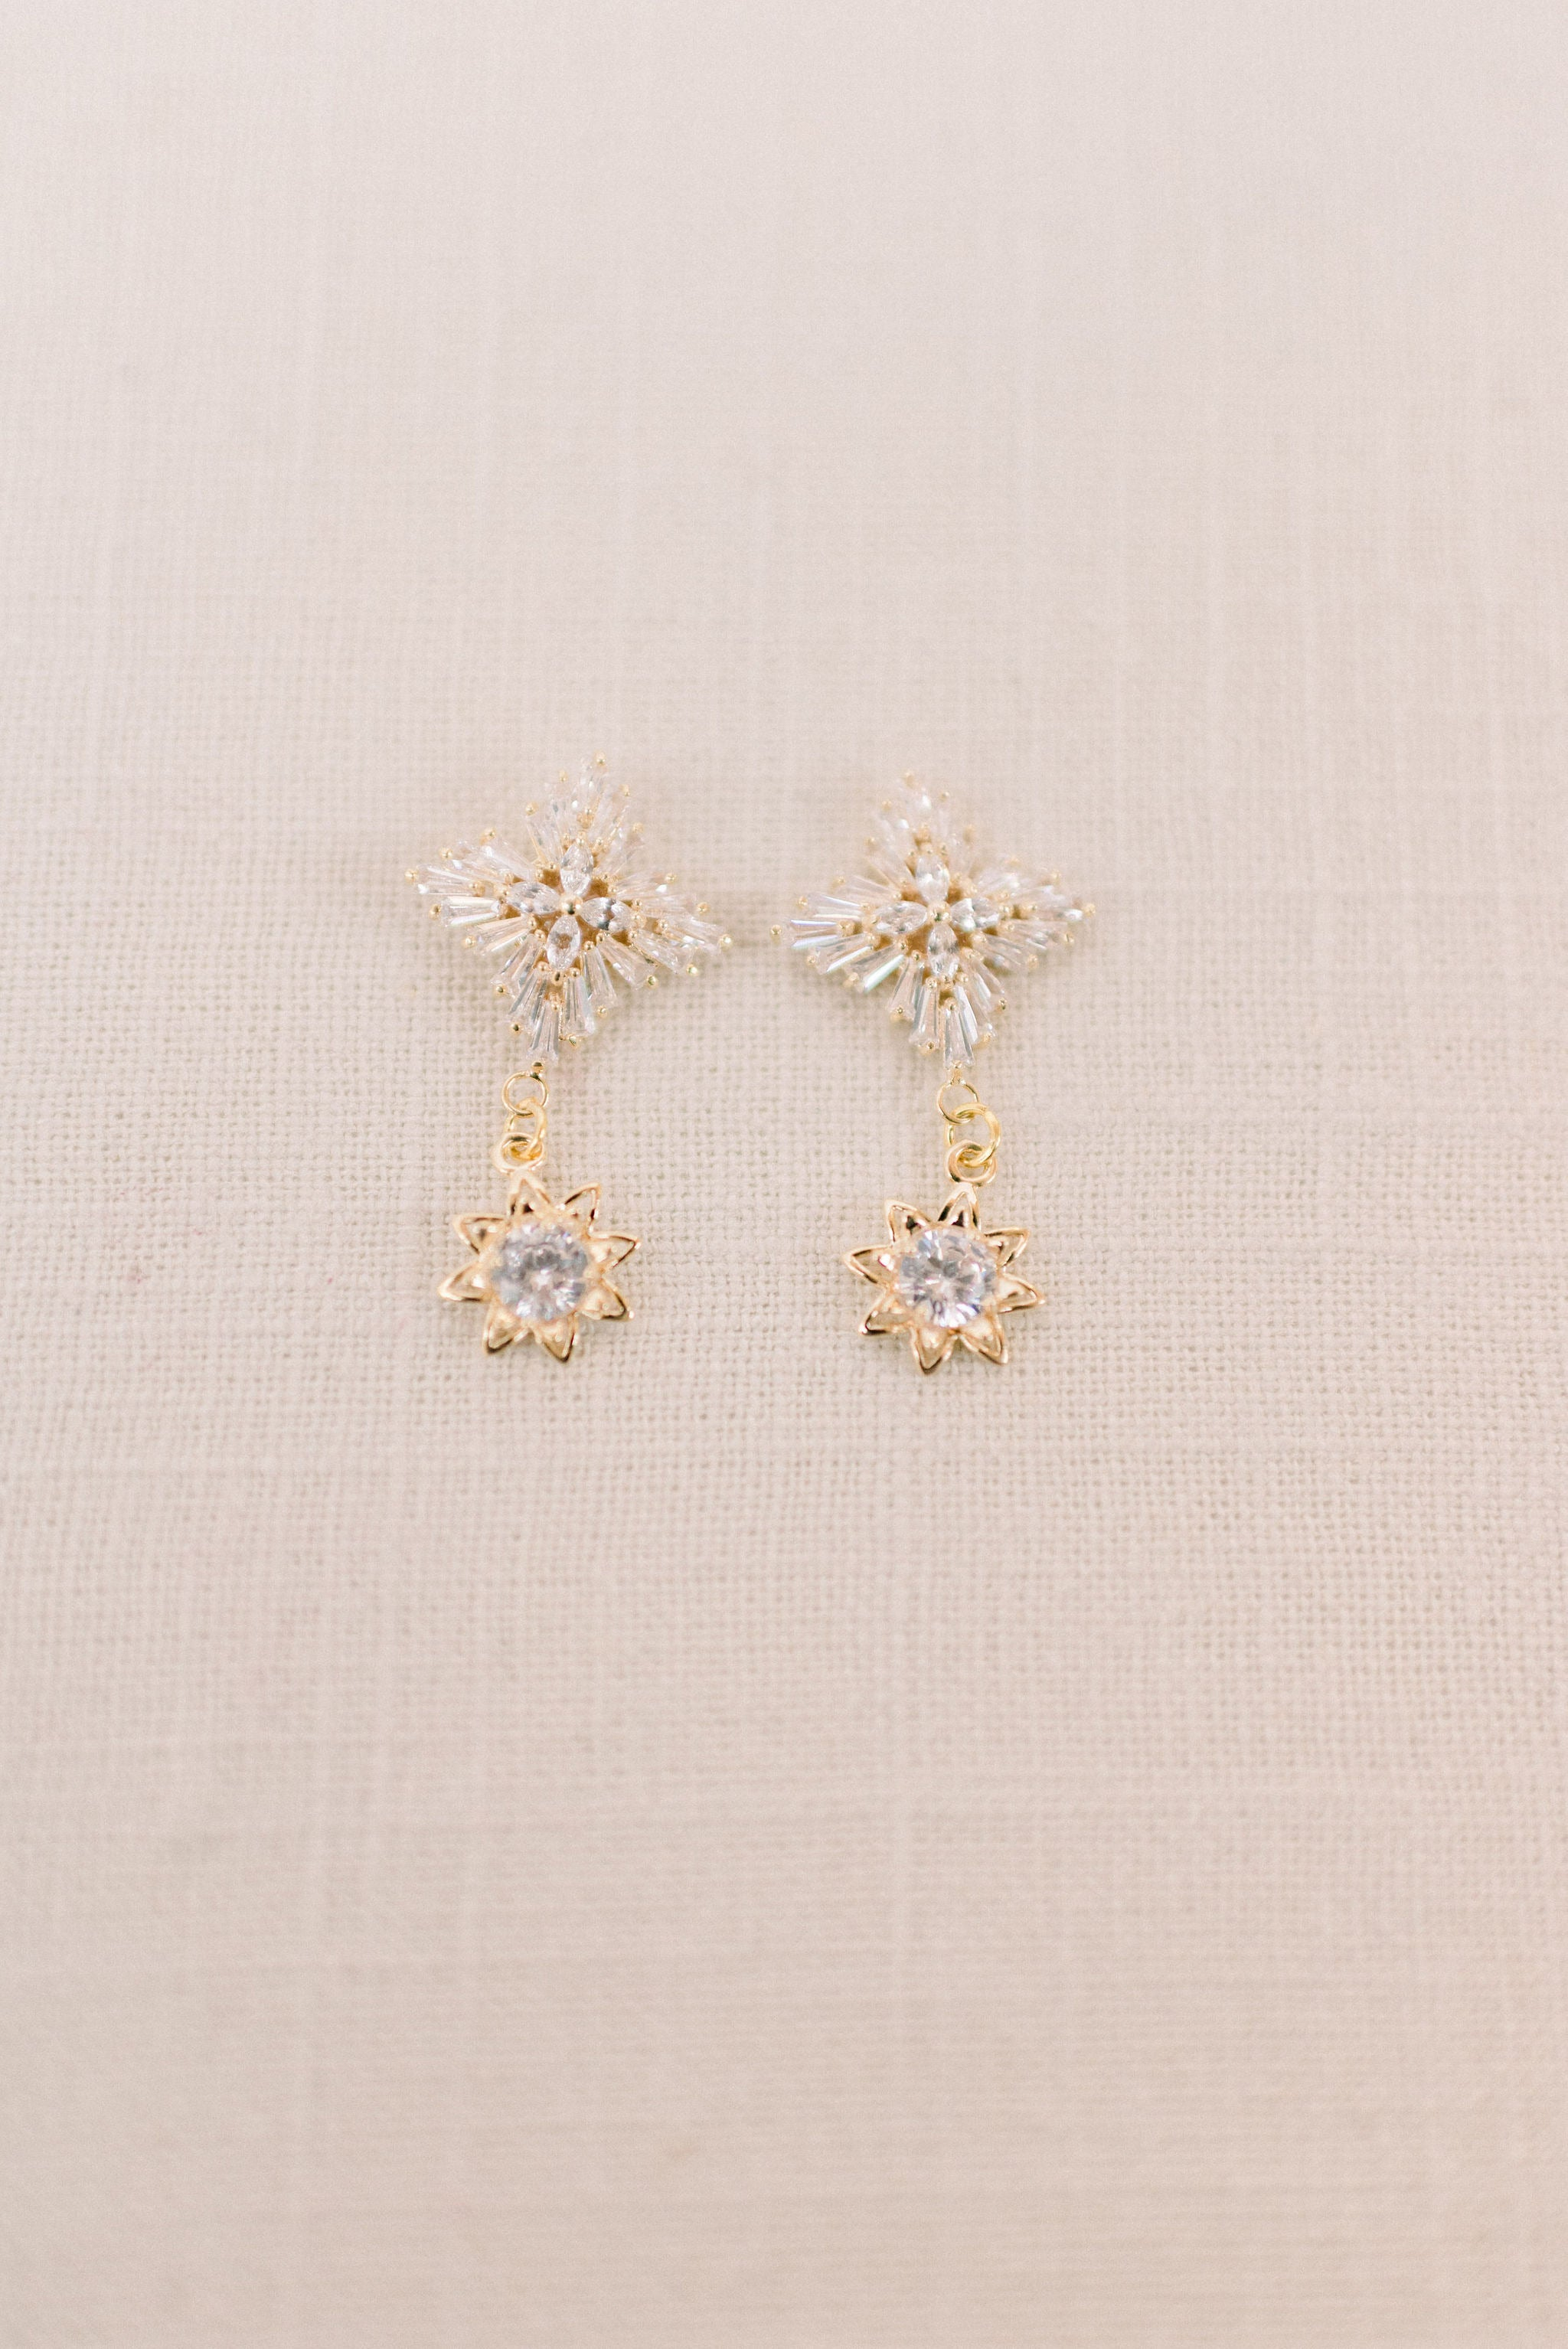 Cubic zirconia drop earrings - Style 6003 - Tessa Kim